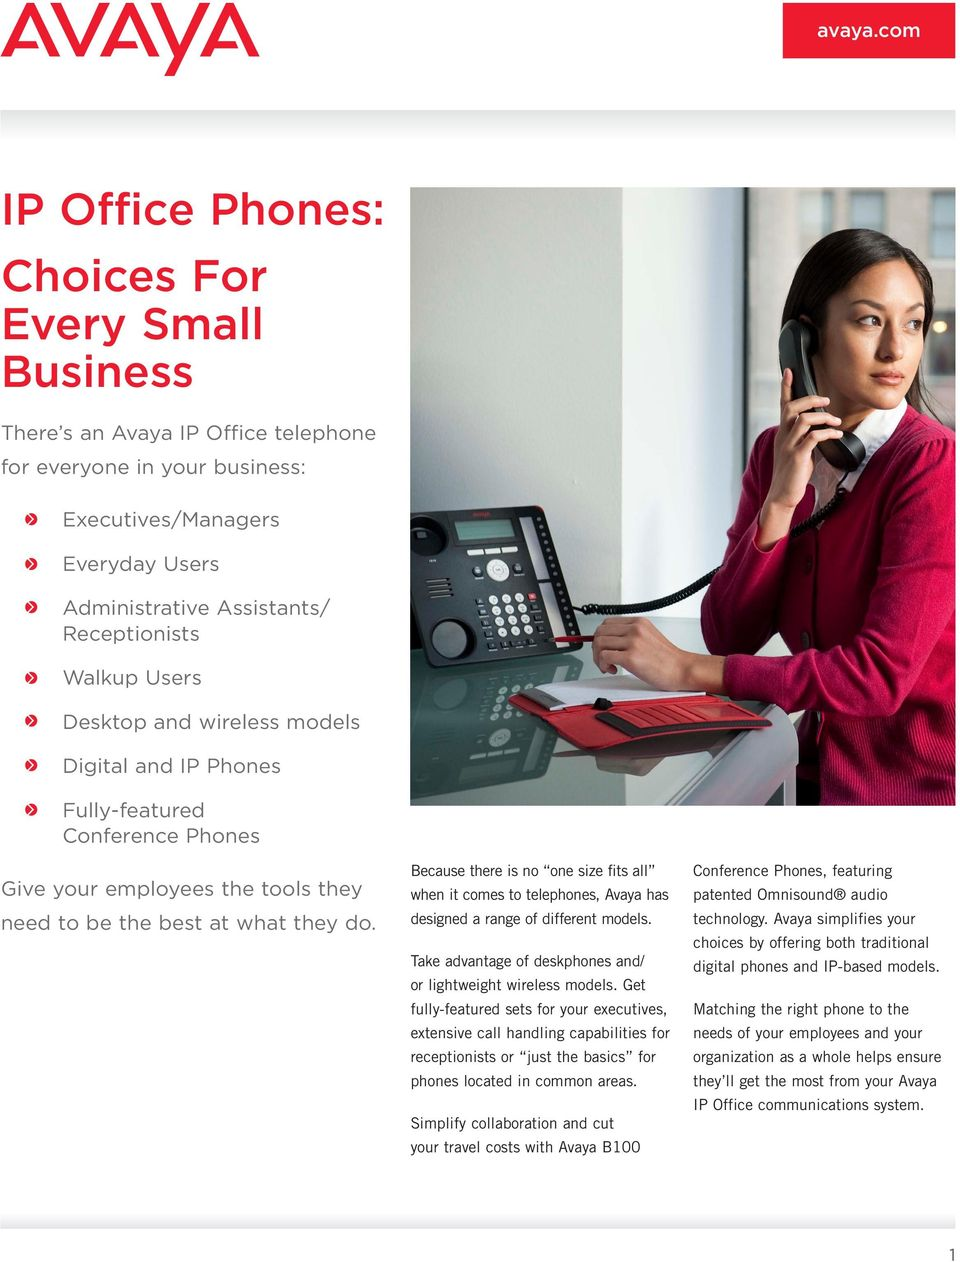 Because there is no one size fits all when it comes to telephones, Avaya has designed a range of different models. Take advantage of deskphones and/ or lightweight wireless models.